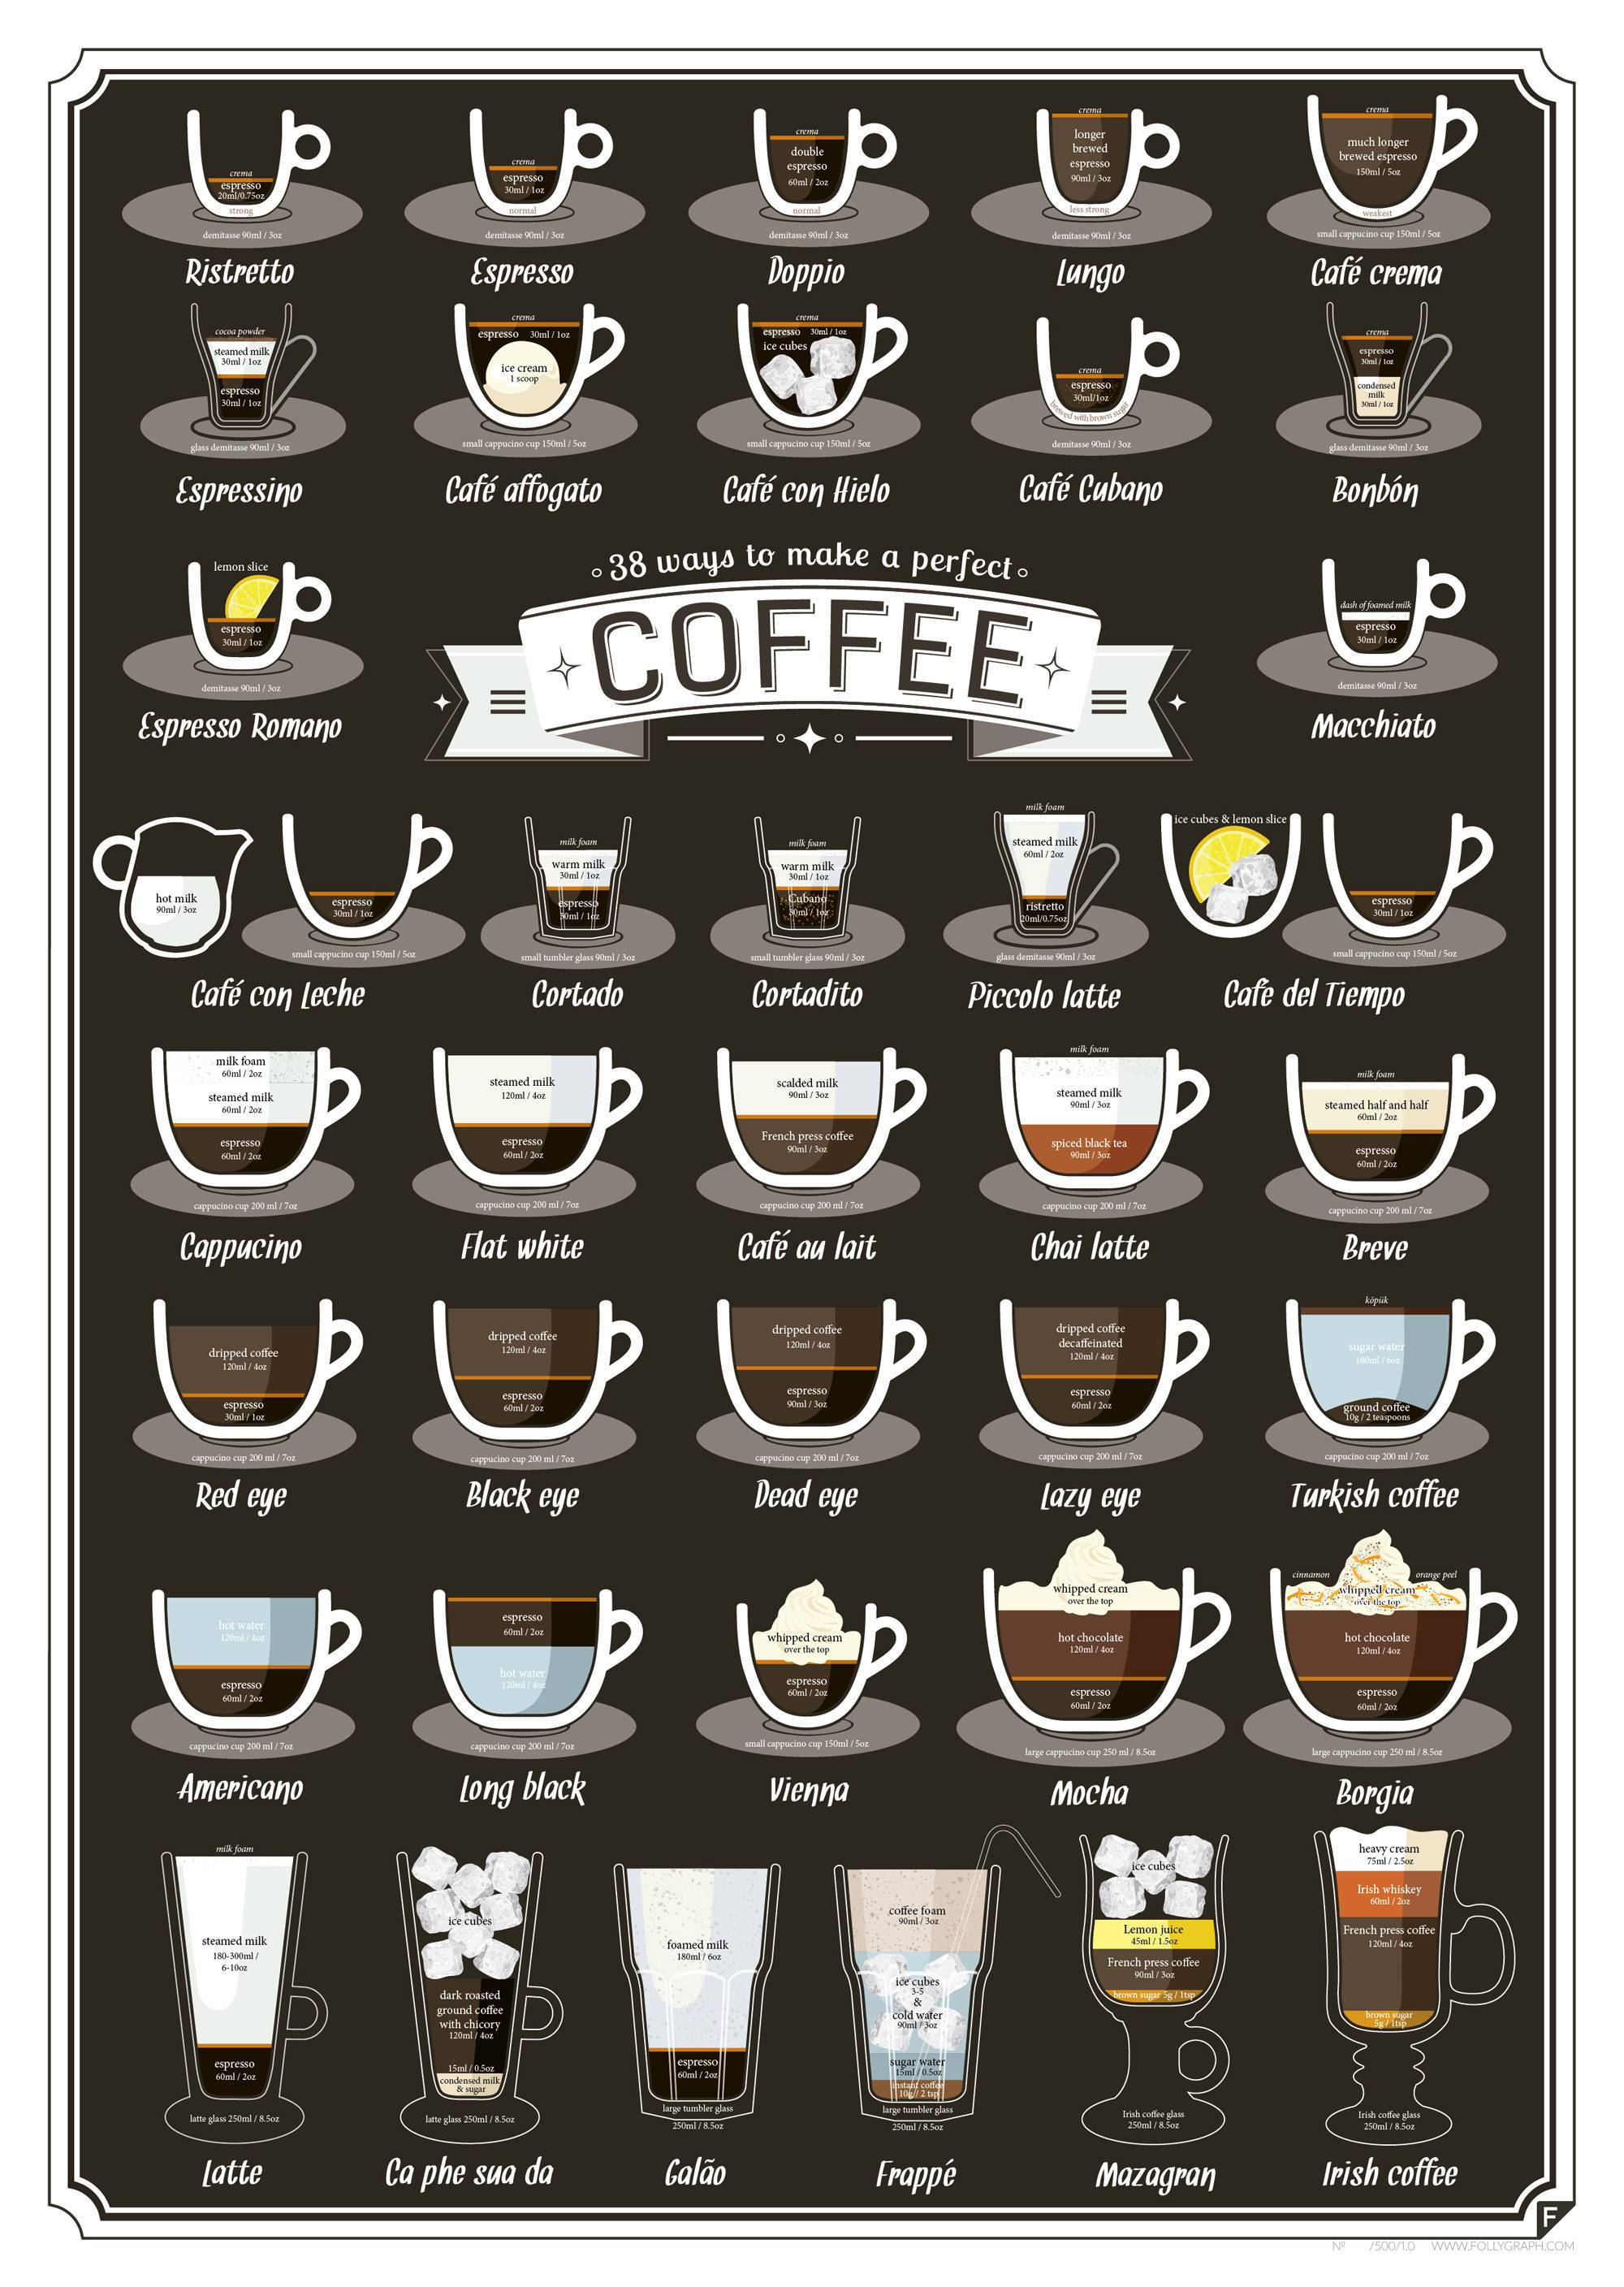 38-ways-to-make-perfect-coffee